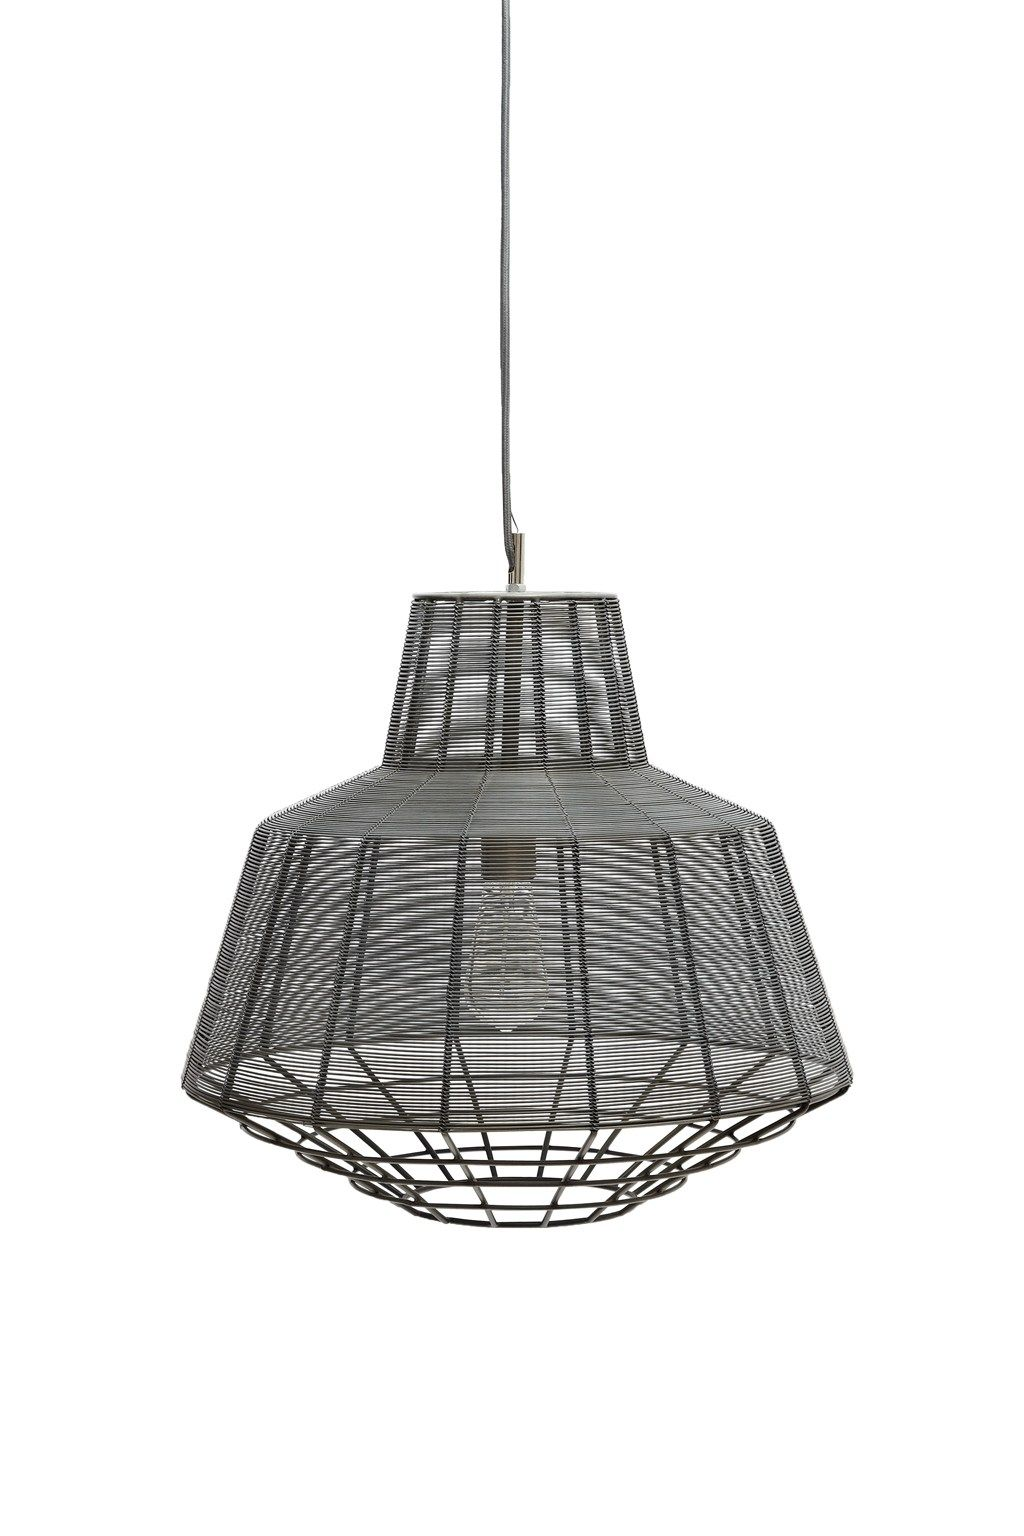 Wovenised pendant light lighting french connection light wovenised pendant light lighting french connection arubaitofo Choice Image